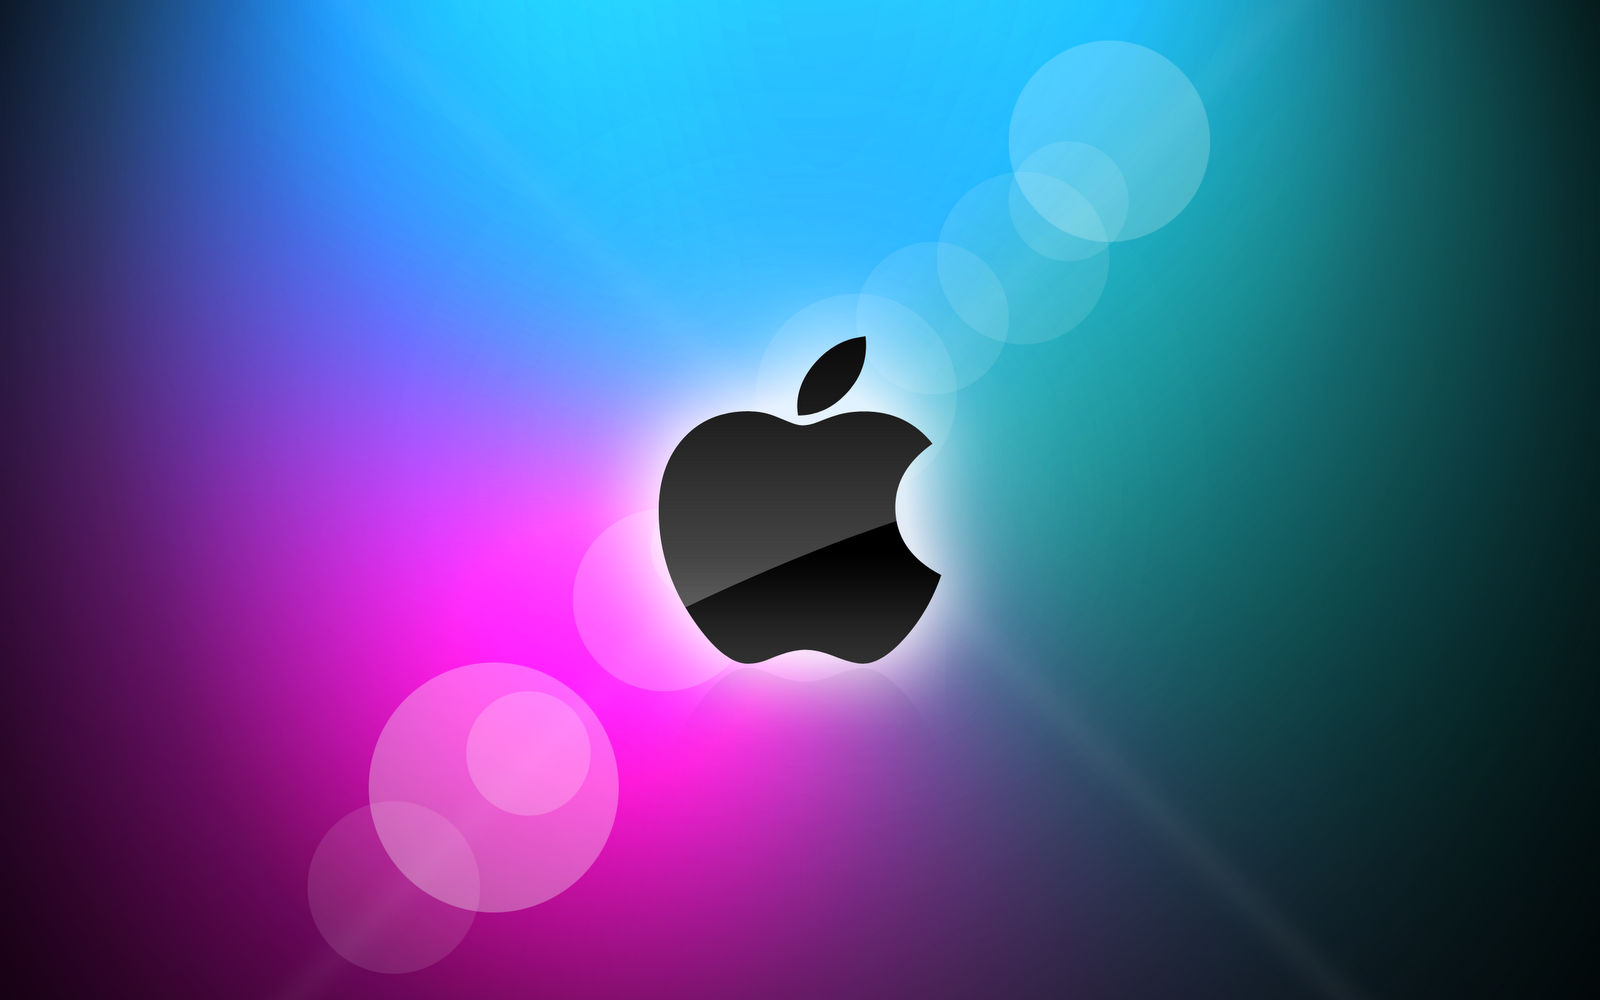 APPLE iPhone HD WALLPAPERS ~ HD WALLPAPERS